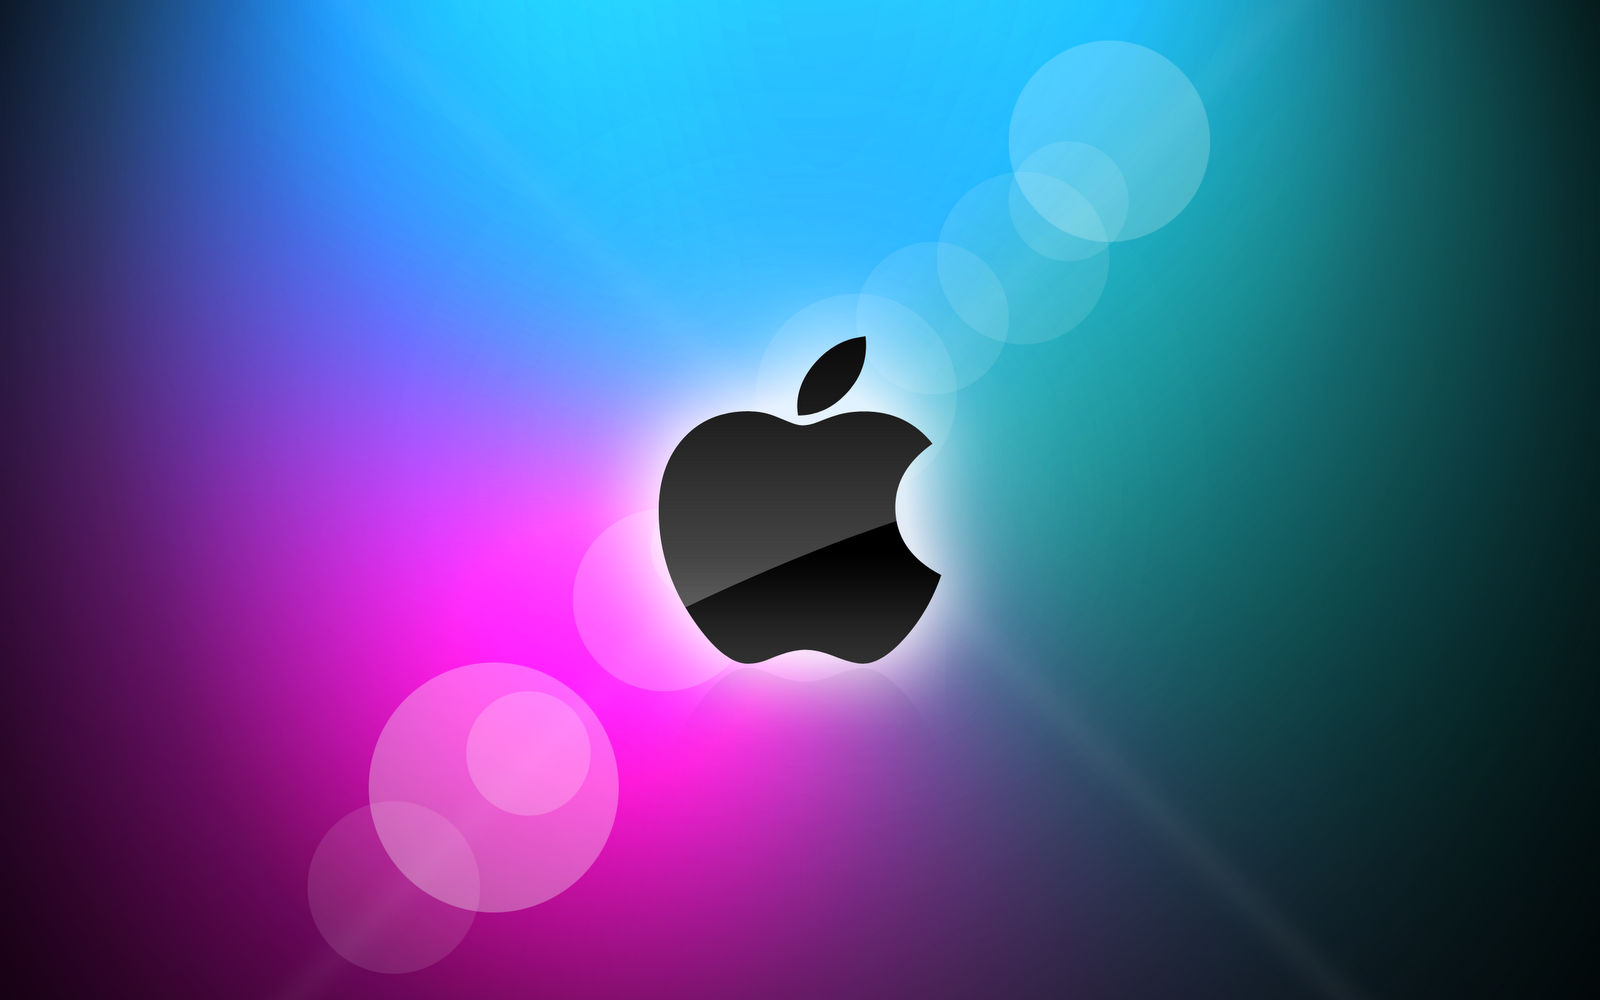 APPLE iPhone HD WALLPAPERS ~ HD WALLPAPERS